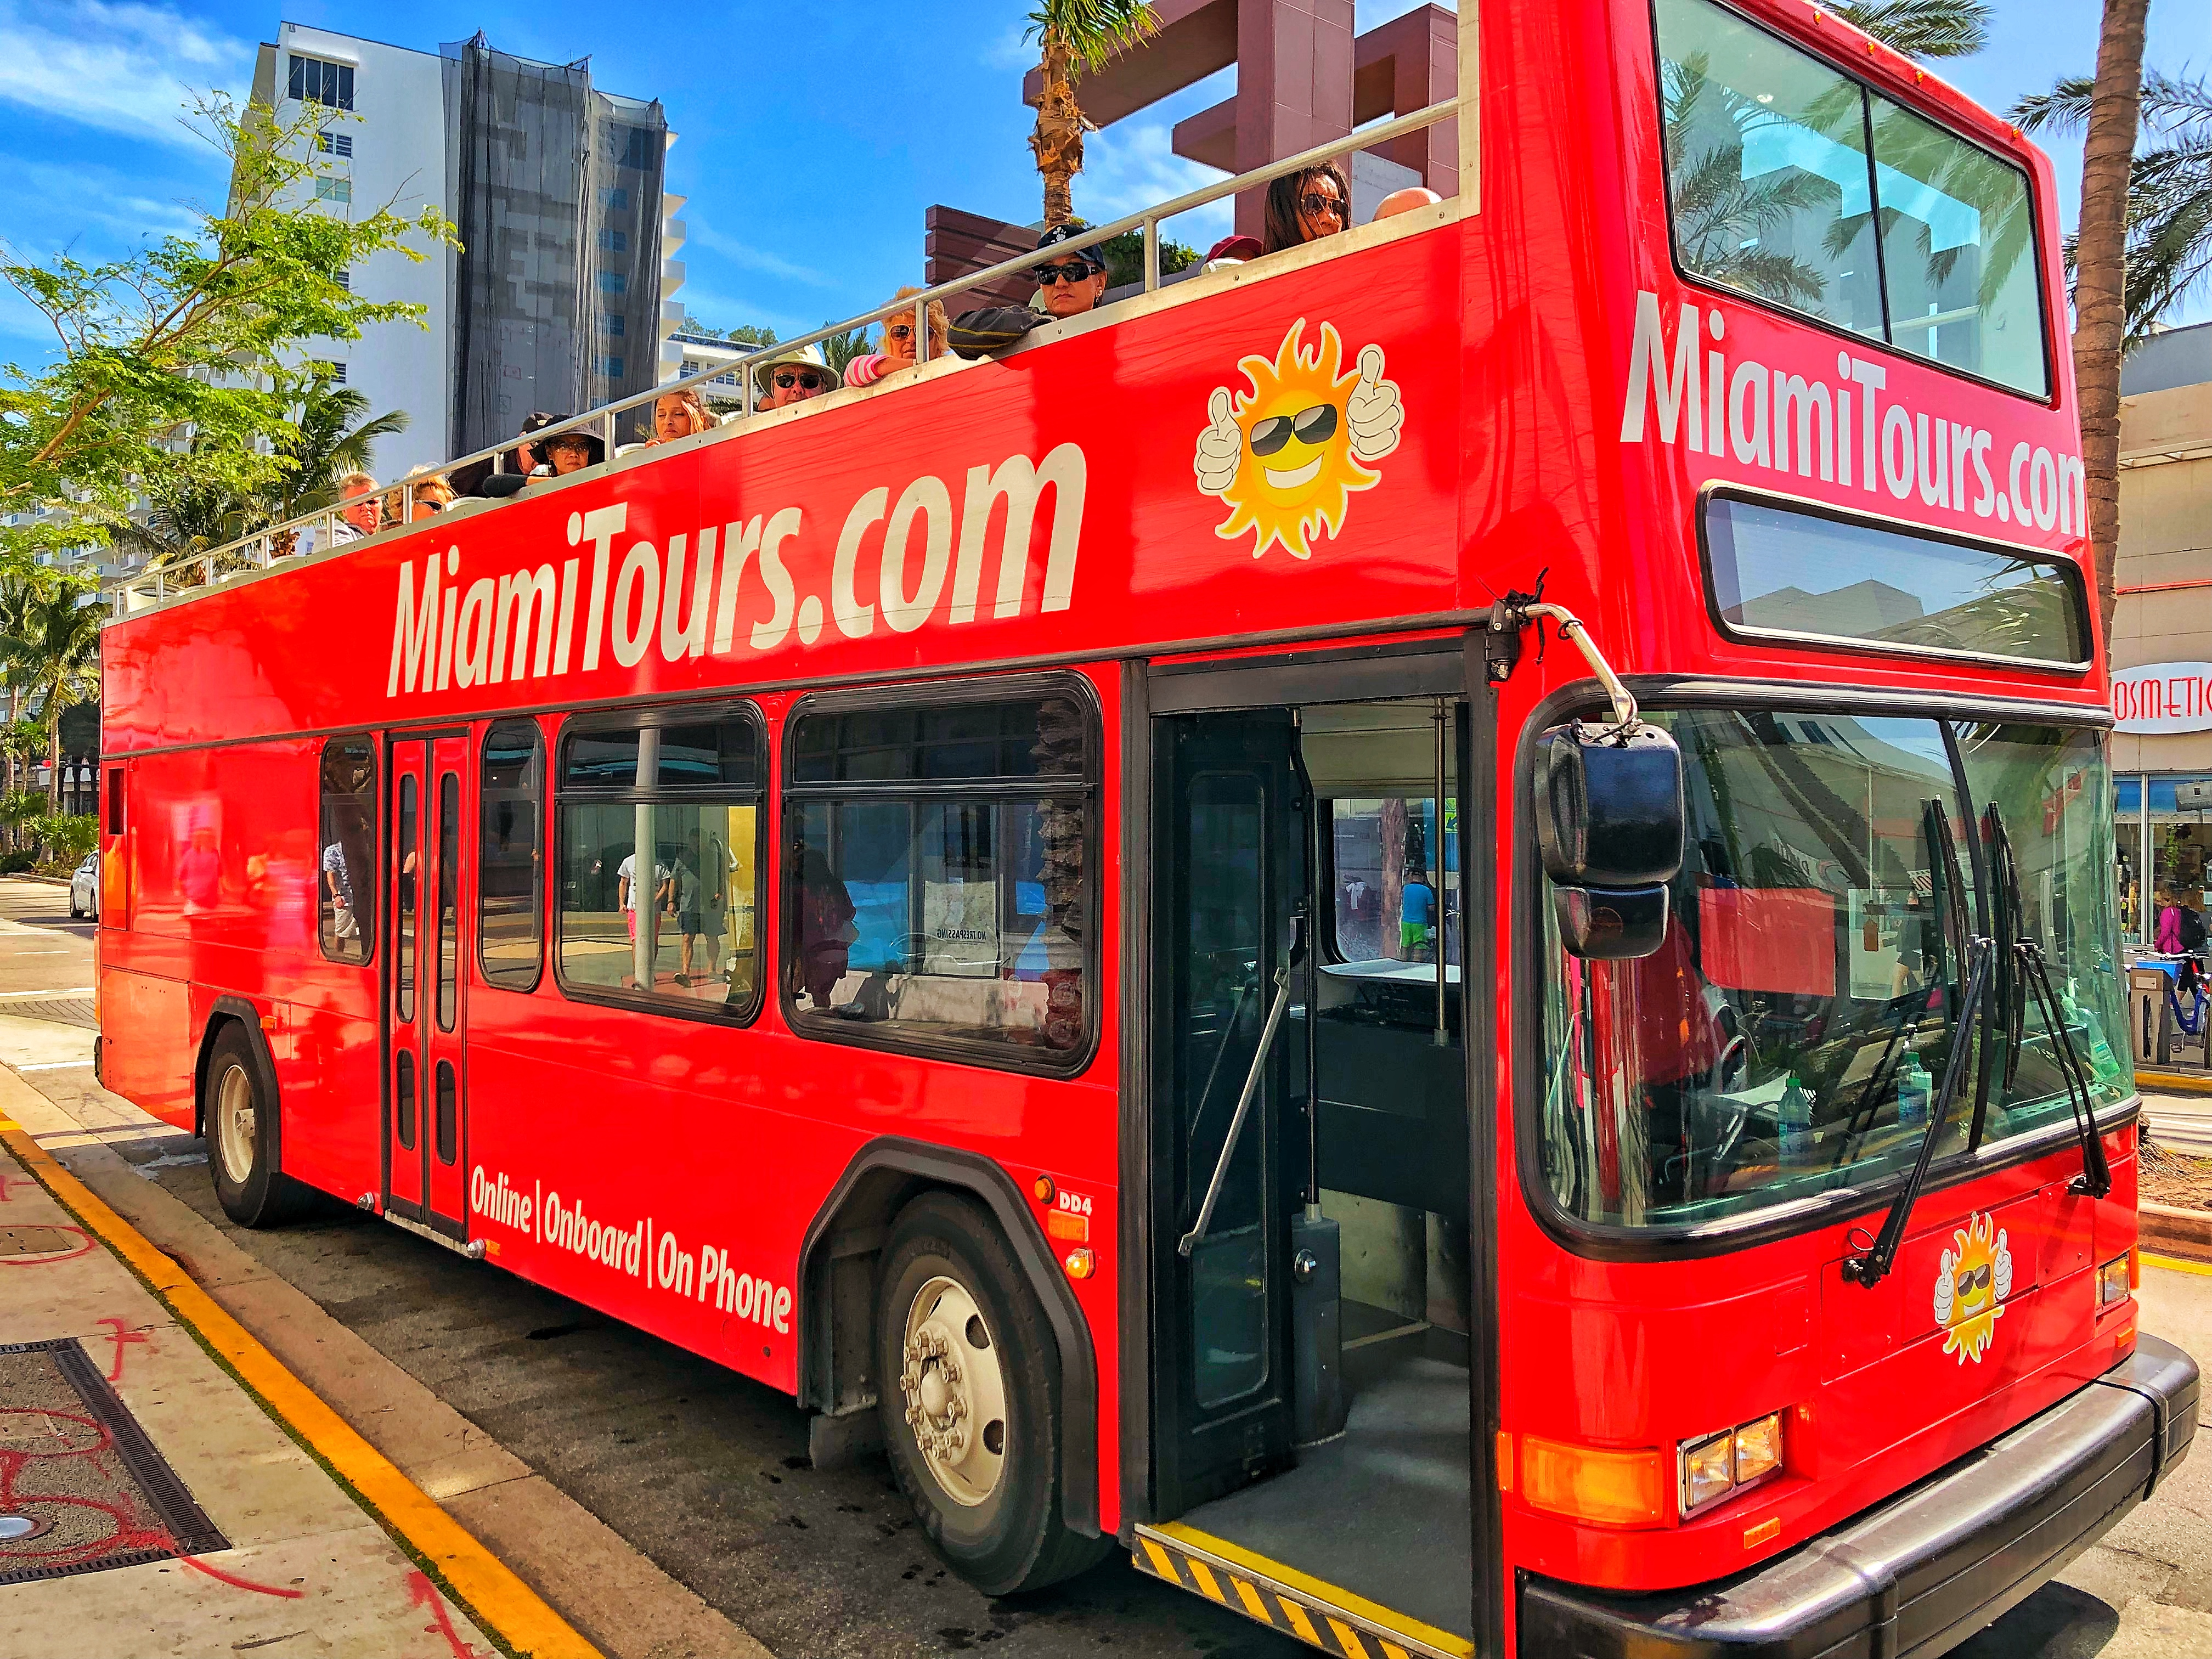 hop-on-hop-off-miami-double-decker-sightseeing-bus-tour.jpg